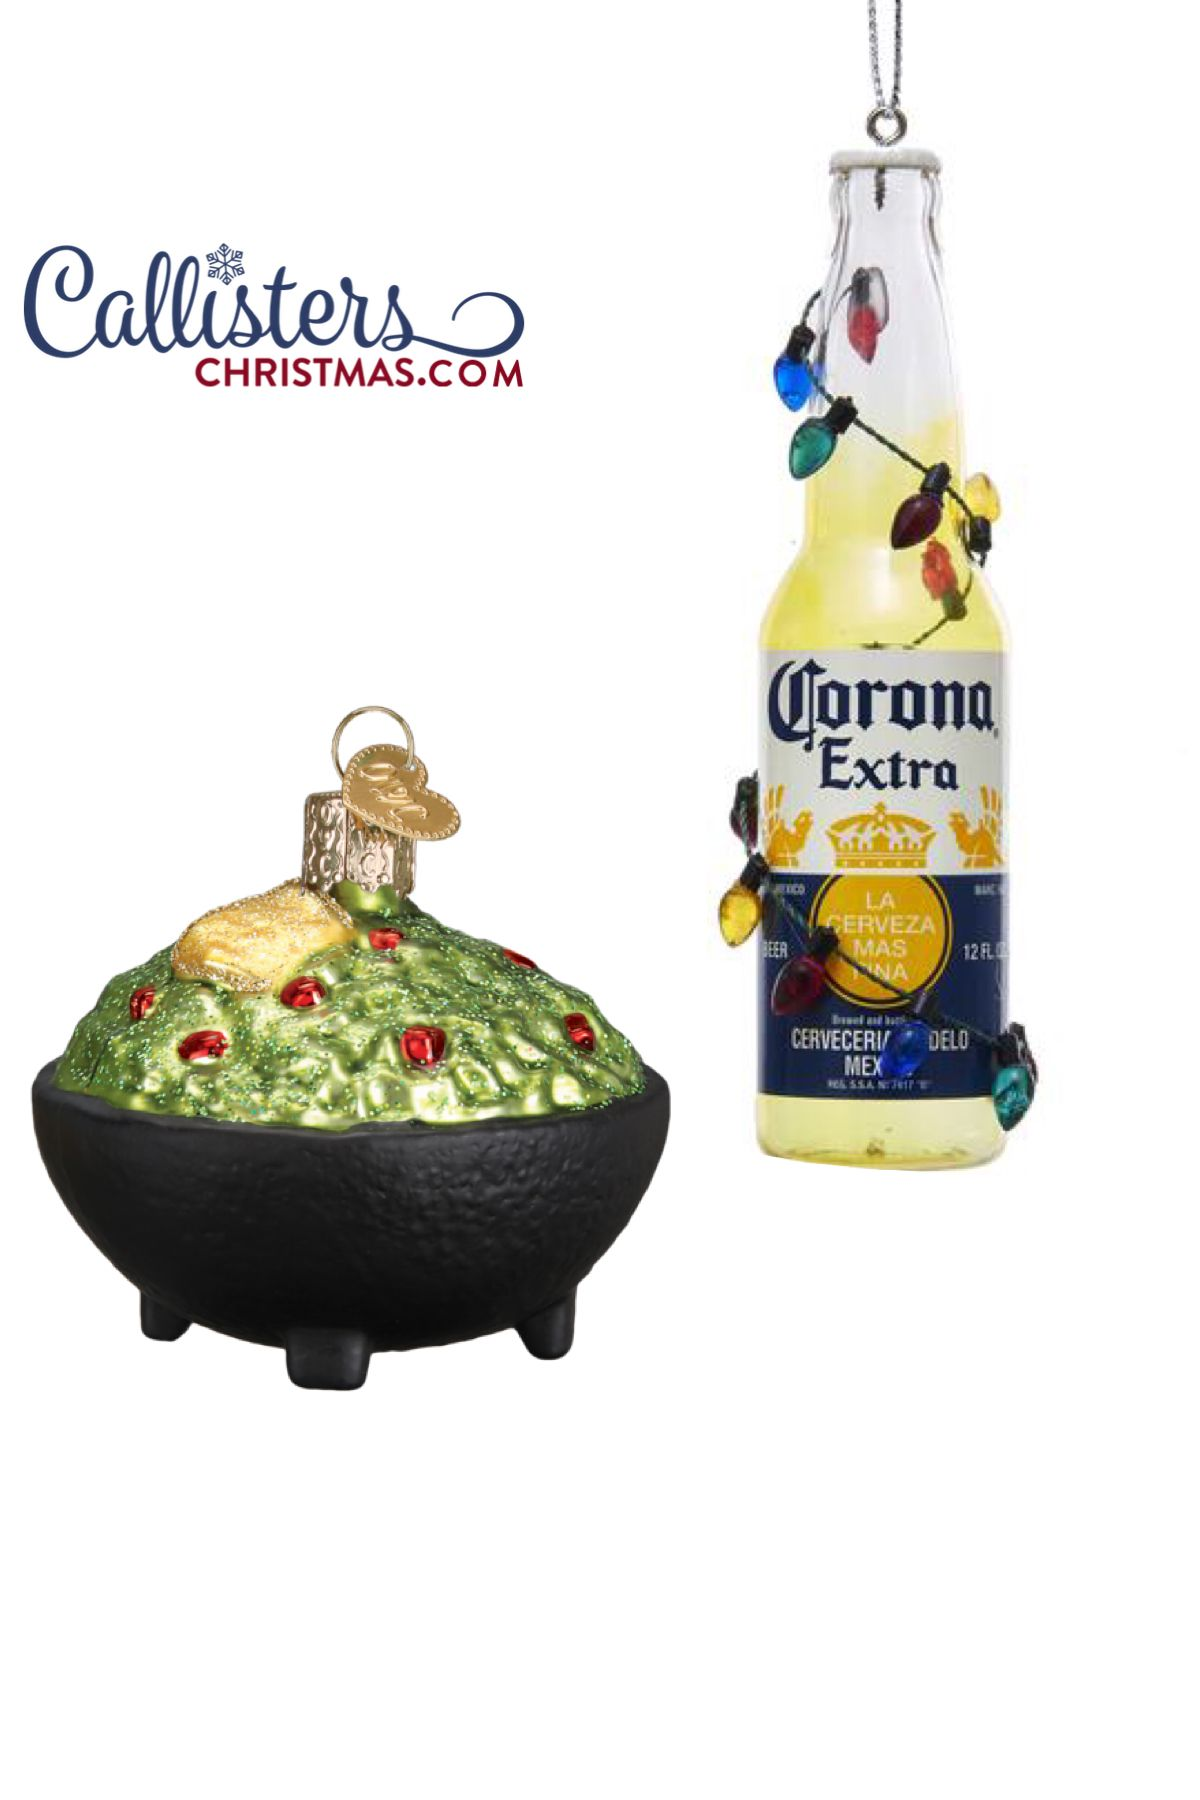 Cinco De Mayo Fun Callisters Christmas Beer Christmas Gifts Bottle Wrapping Lighted Ornaments